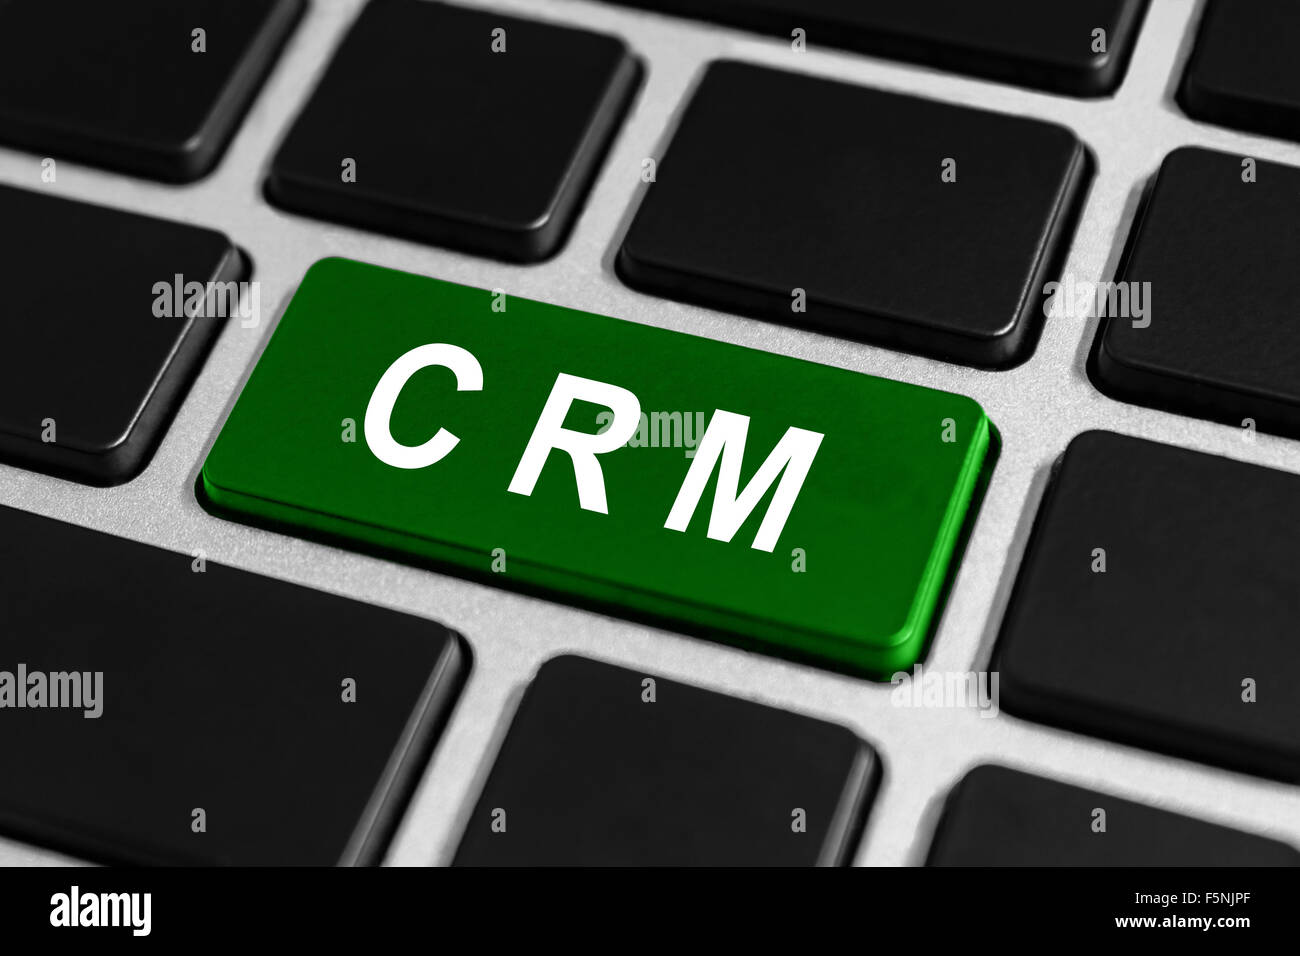 CRM or Customer relationship management button on keyboard, business concept - Stock Image